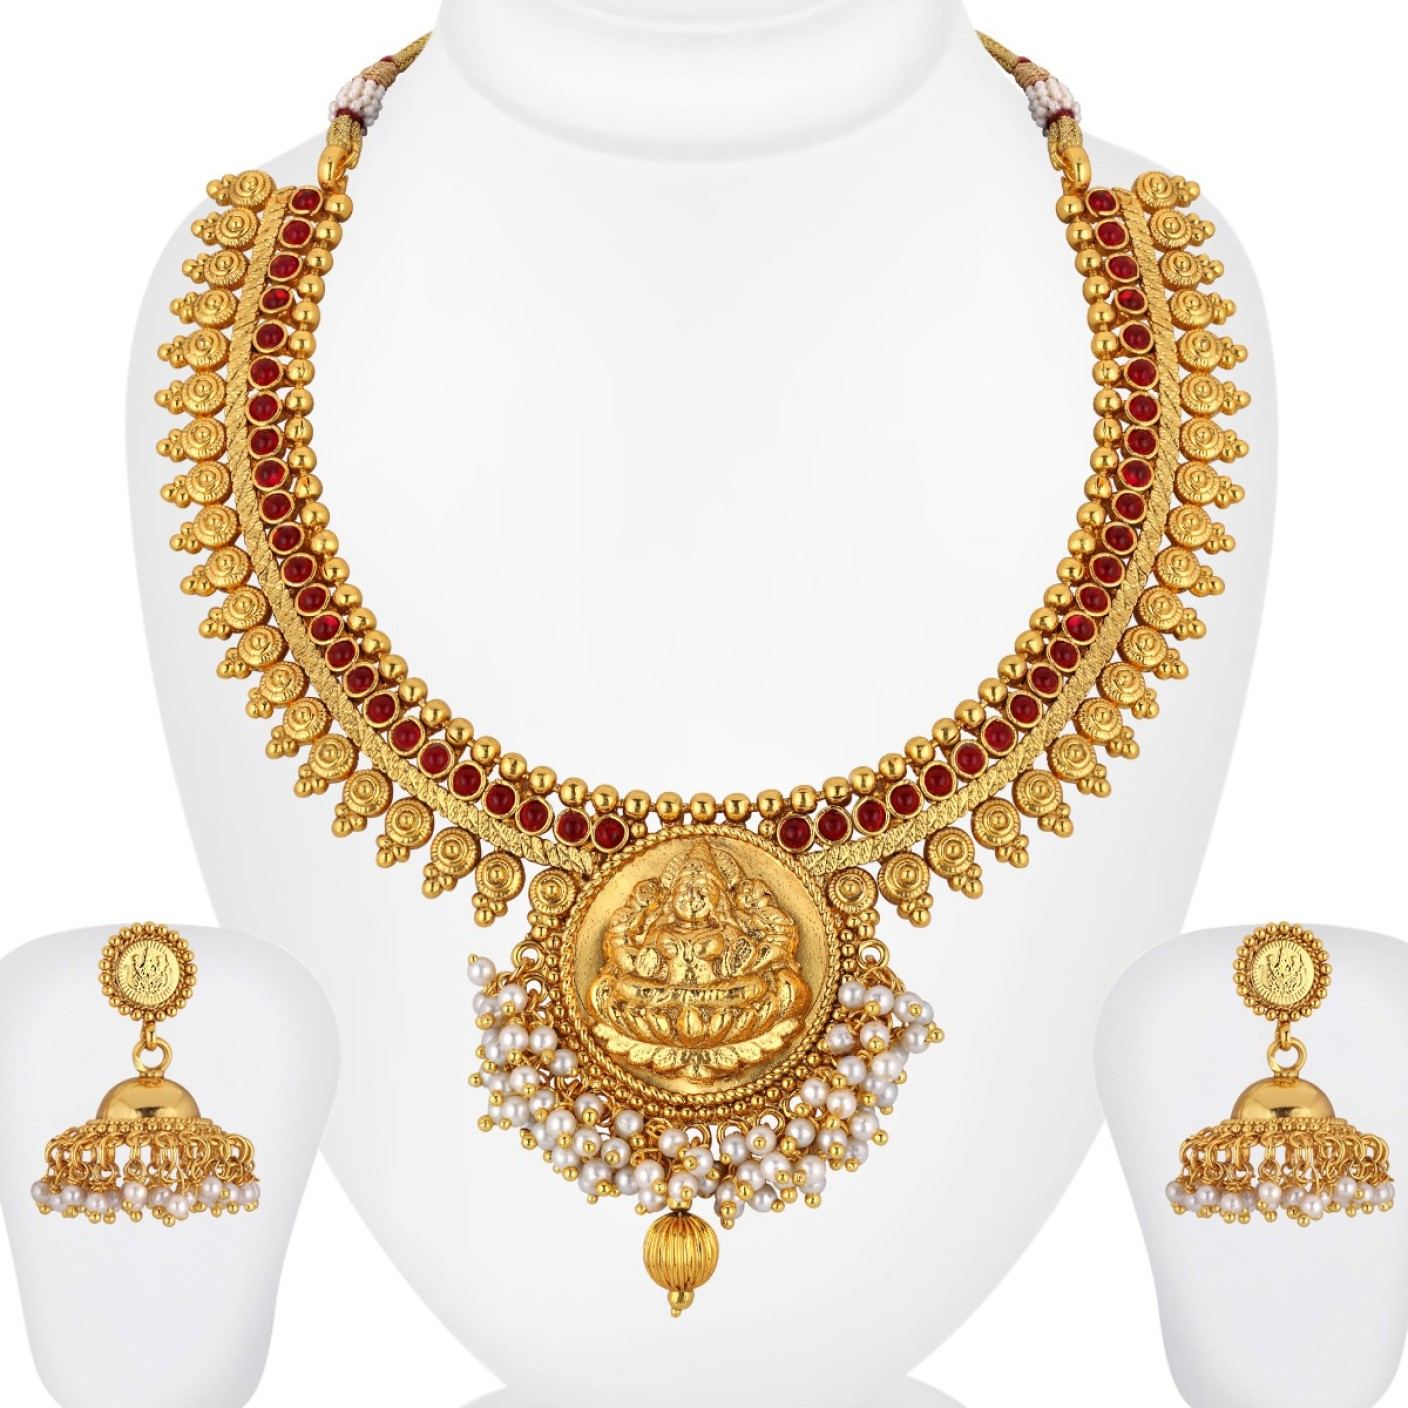 Indian Gold Jewellery Necklace Designs With Price: Spargz Brass Jewel Set Price In India